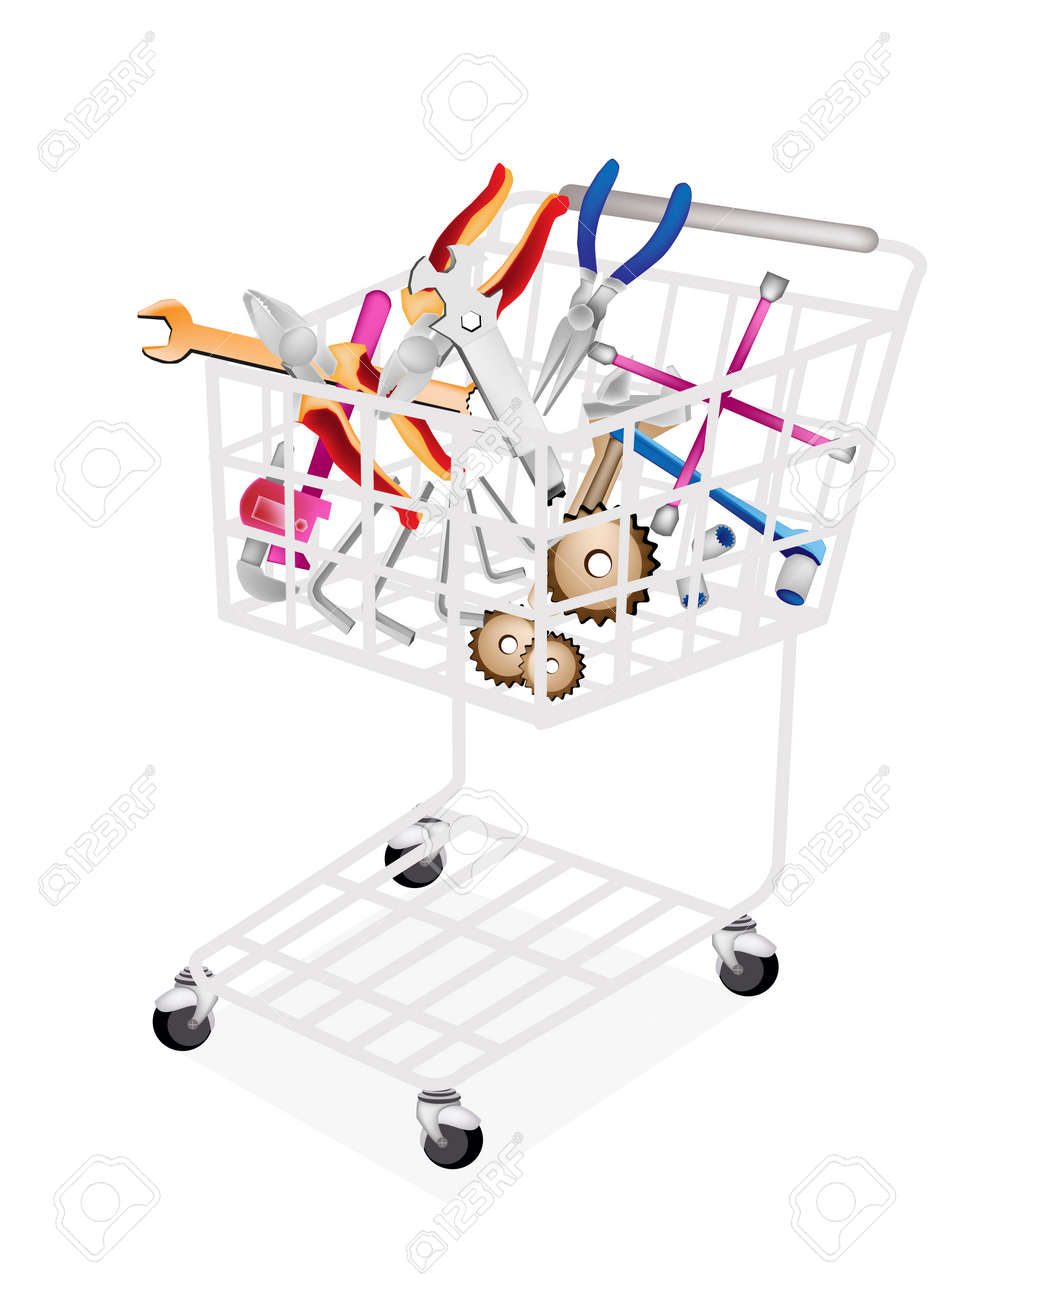 A Shopping Cart Full with Various Type of Auto Service and Repair Tool Kits, Spanner, Gears, Pipe Wrench, Hex Keys, Socket Wrench and Lug Wrench Isolated on White Backgrounds Stock Vector - 22773615